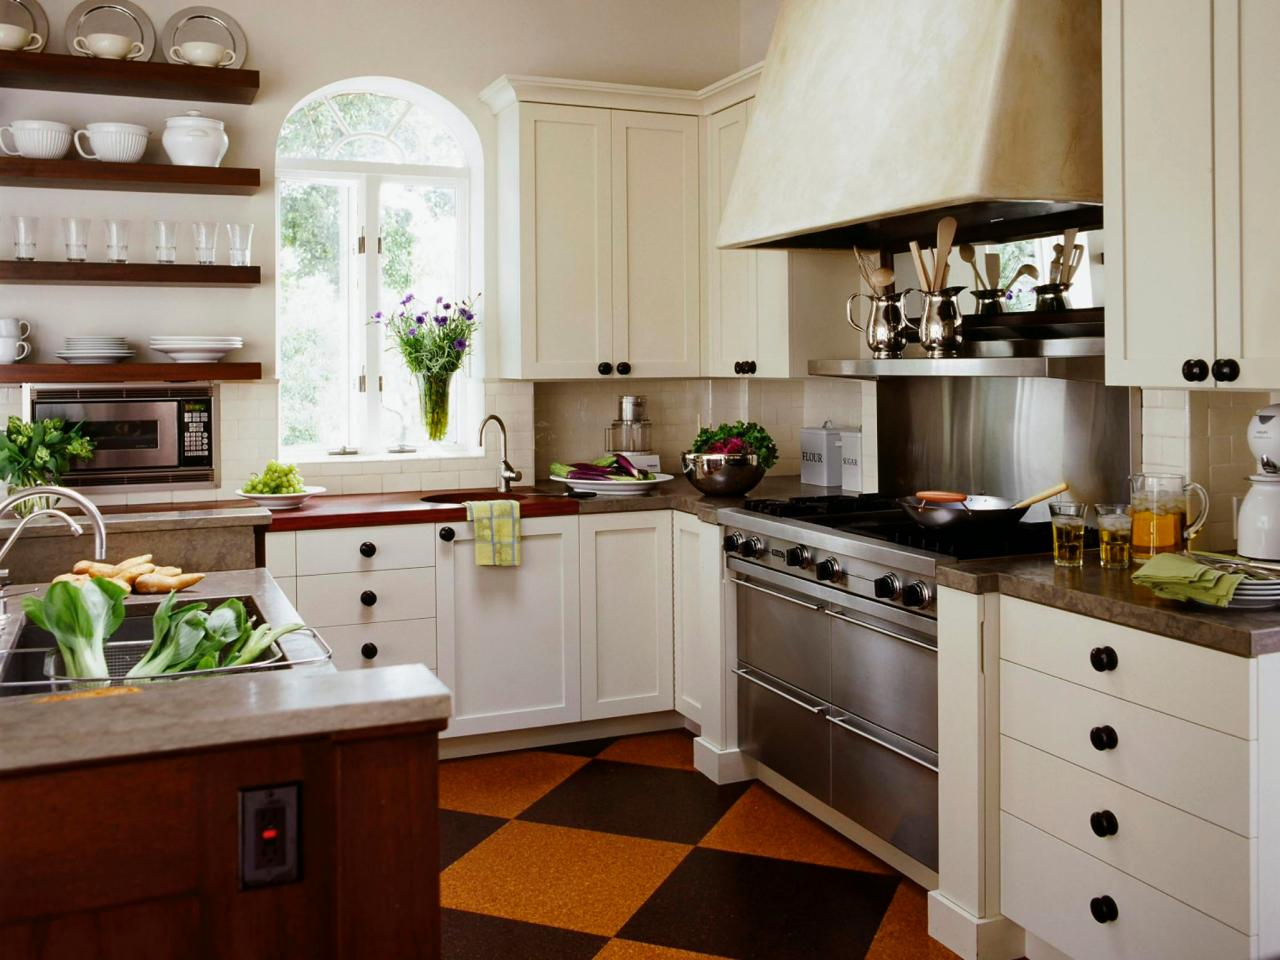 Cottage kitchens hgtv for Hgtv kitchens